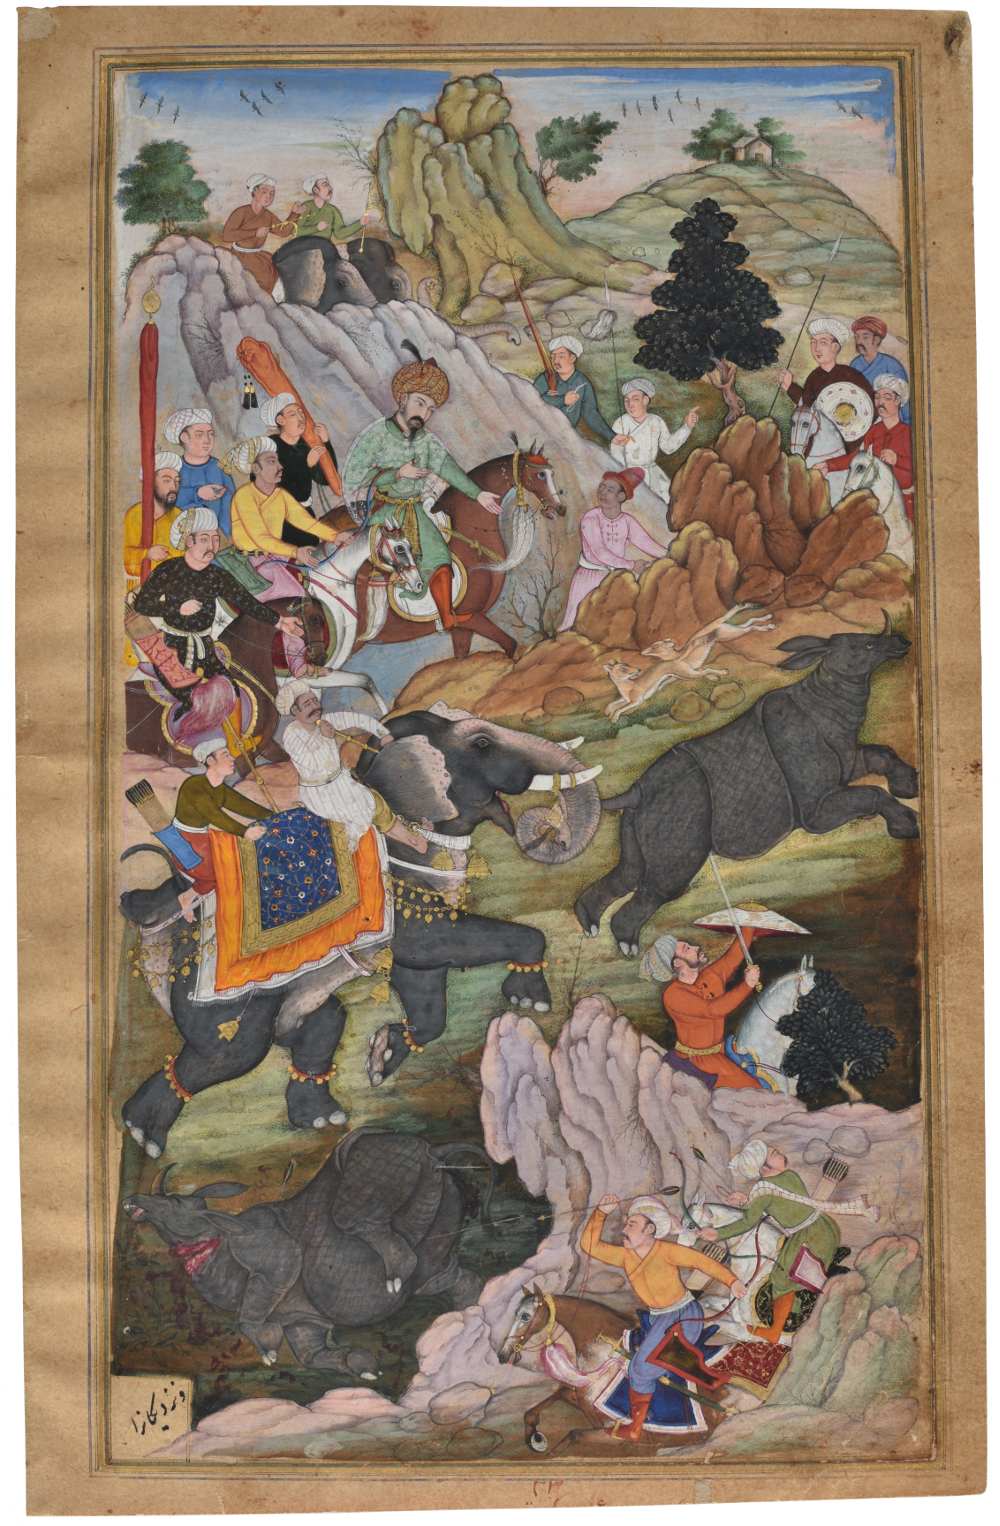 Two folios from the Baburnama: Folio two  - Ink and opaque watercolour on paper, mineral pigmentAbout AD 1598Probably Agra, Uttar Pradesh, IndiaNational Museum, New Delhi This painting shows Babur hunting rhinoceros near Peshawar on his fifth expedition in 1525. This provided the opportunity for Babur to satisfy his curiosity about what happens when an elephant and a rhino come face to face. He noted that the rhino retreated and that his young son Humayun who had never seen a rhino before was much entertained. The account comes from Babur's autobiography – the Baburnama, but the paintings were made in the reign of his grandson Akbar (1556–1605).